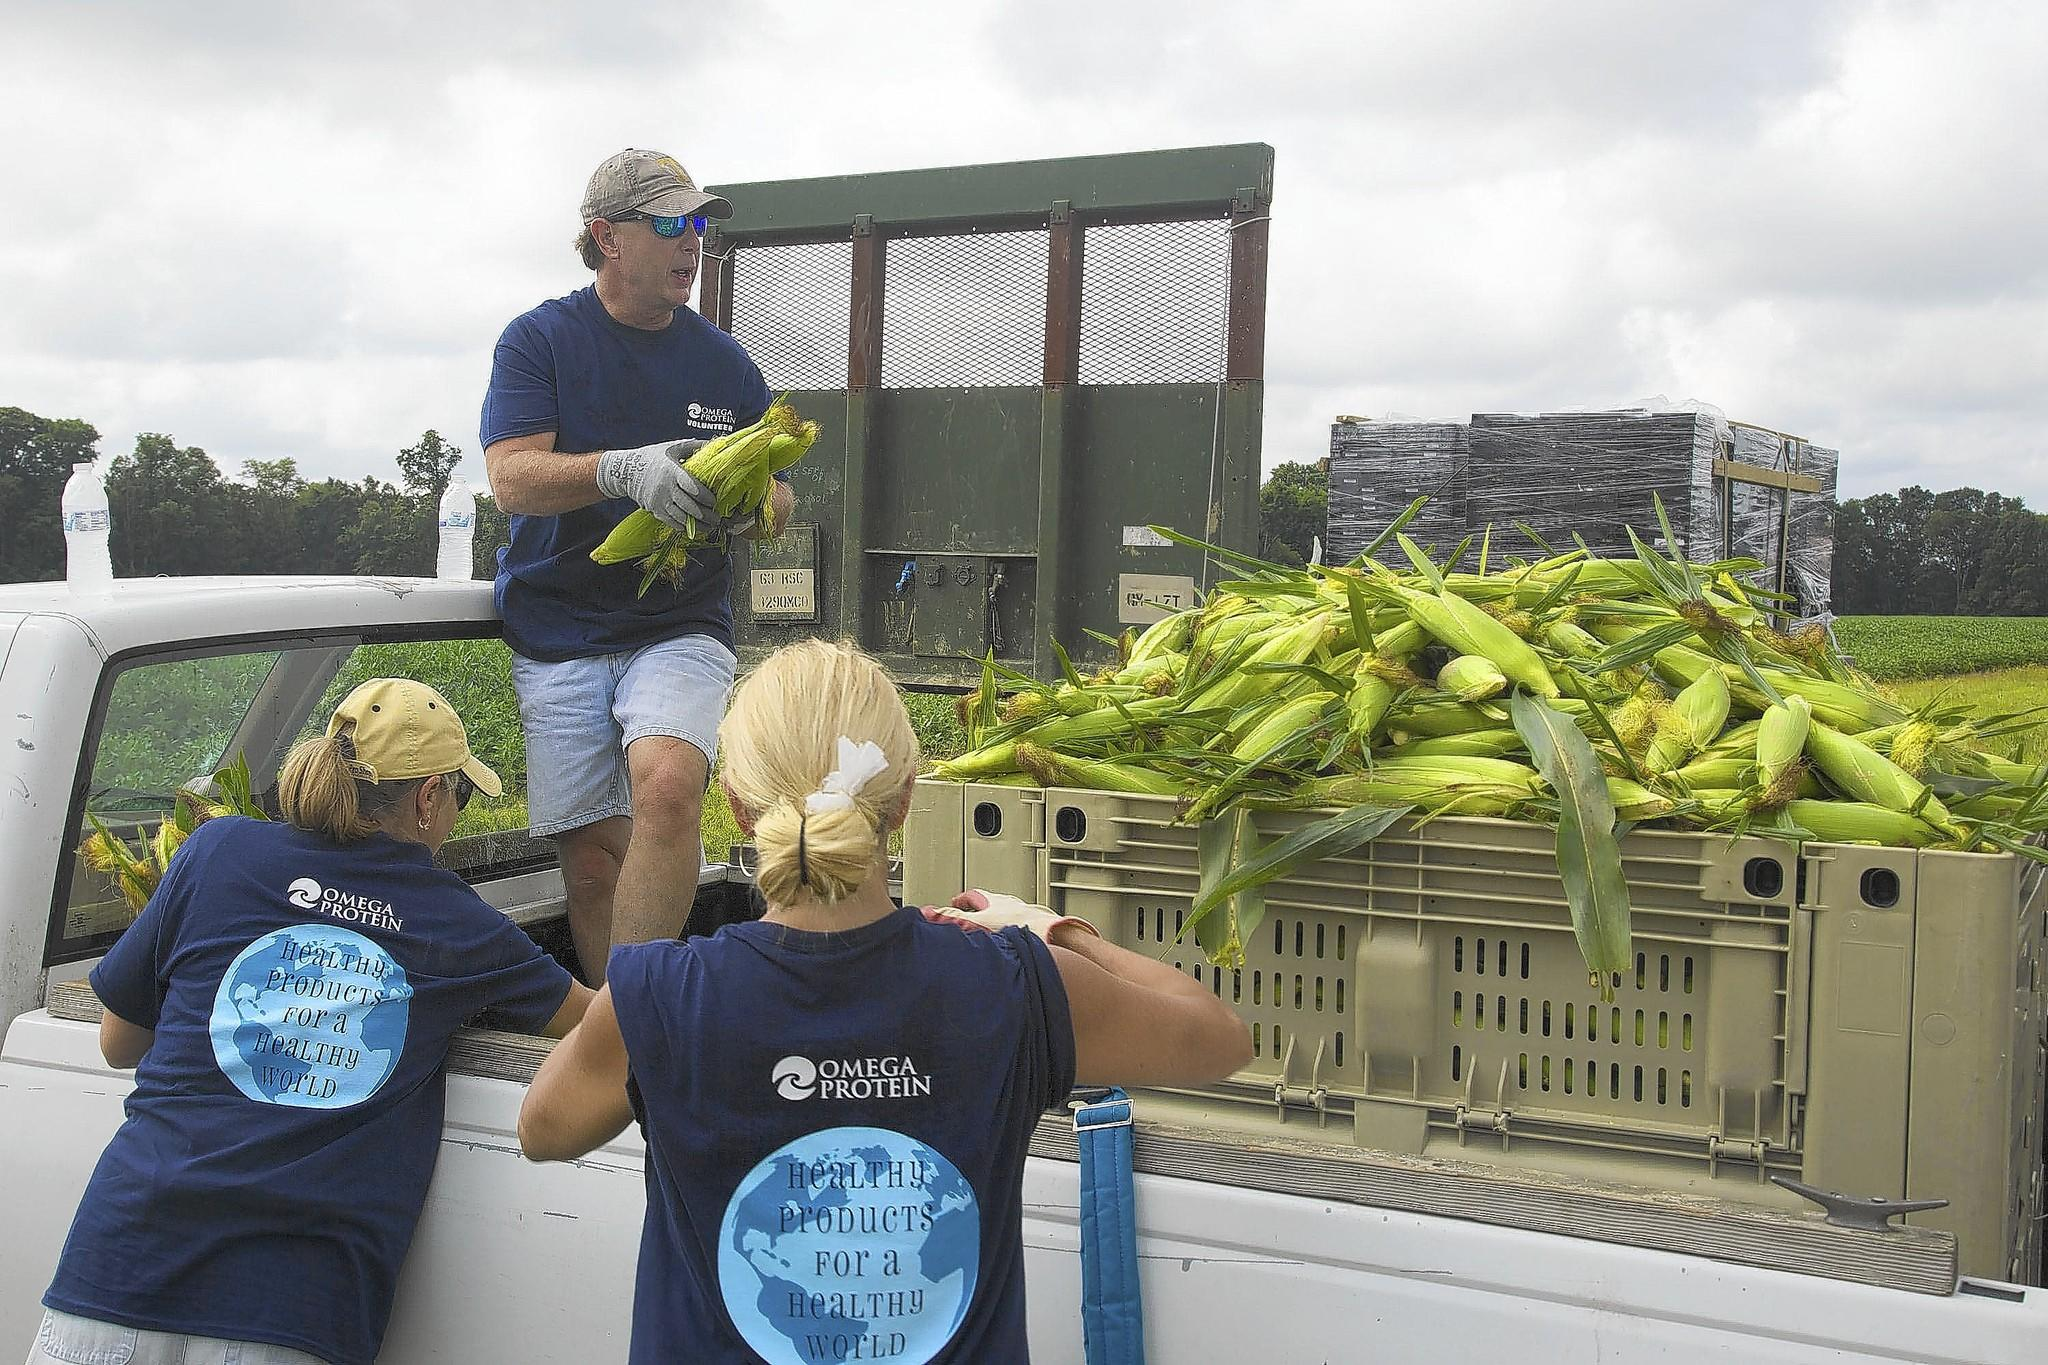 Gary Caldwell, quality assurance manager at the Omega Protein plant in Reedville, helps co-workers who volunteered to glean a local cornfield to supply regional food banks.